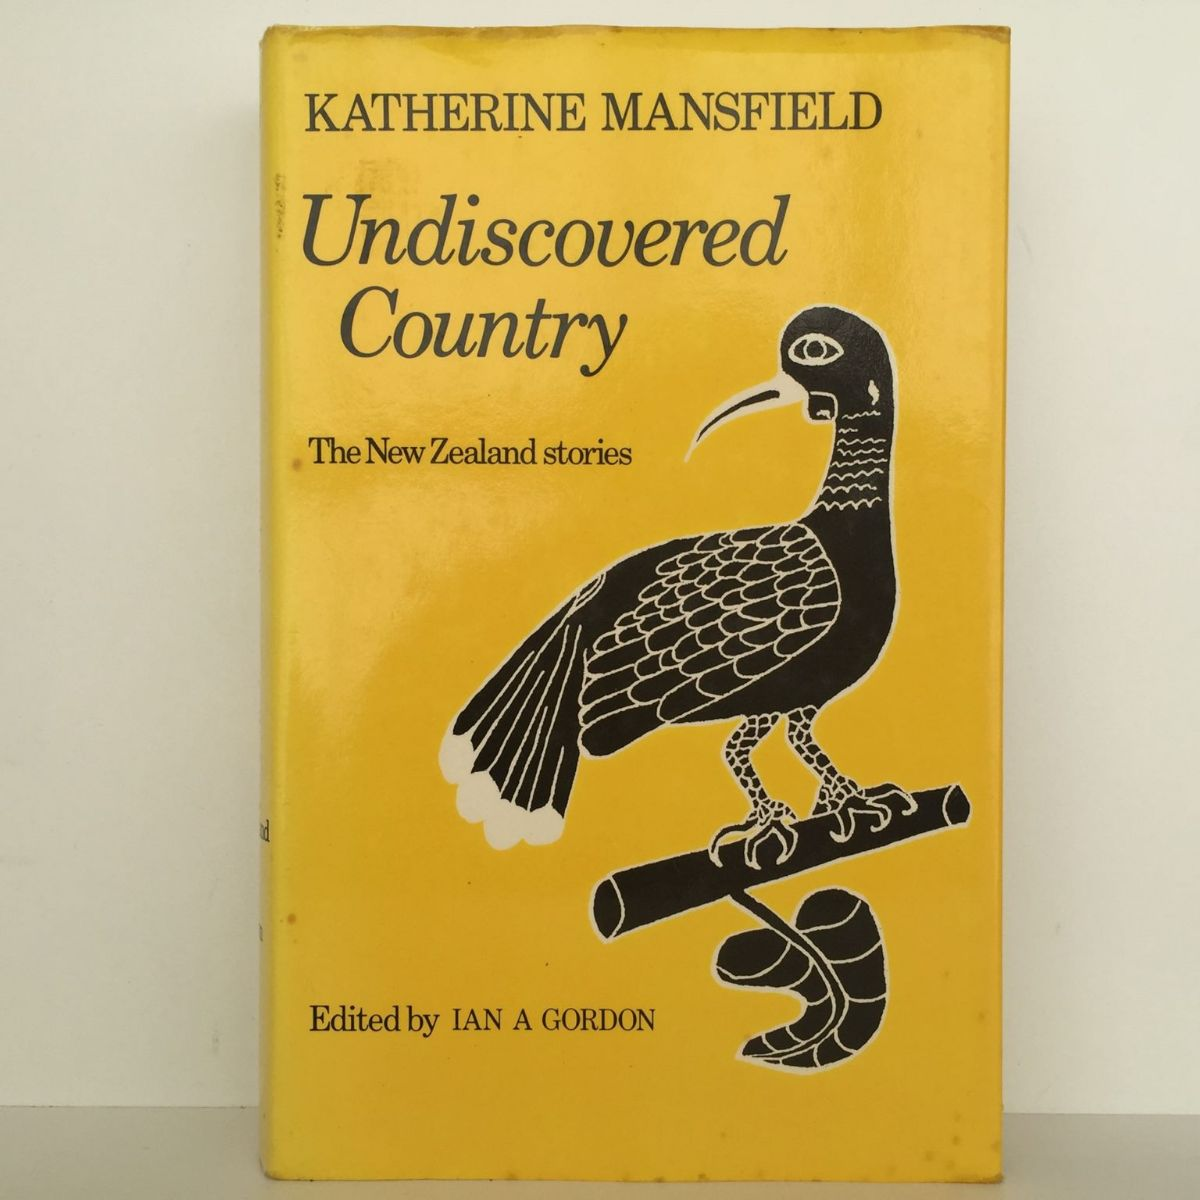 Katherine Mansfield Undiscovered Country: The New Zealand Stories